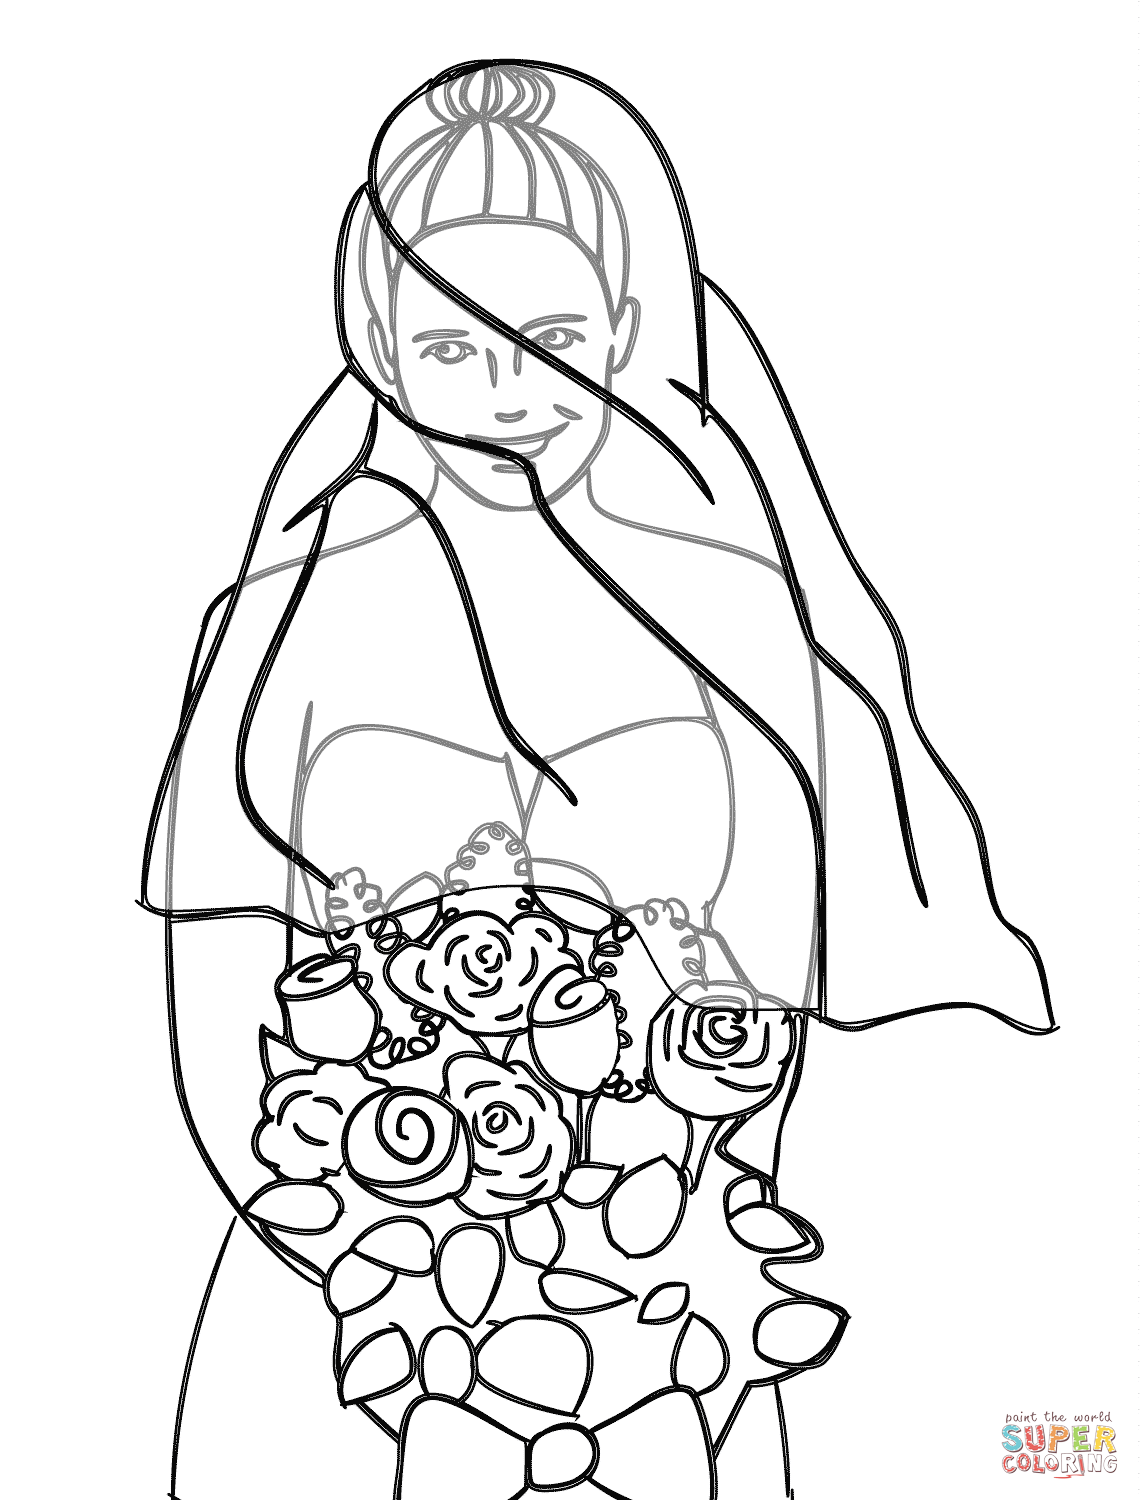 Ball gown coloring page for girls, printable free | Coloring pages ... | 1500x1140